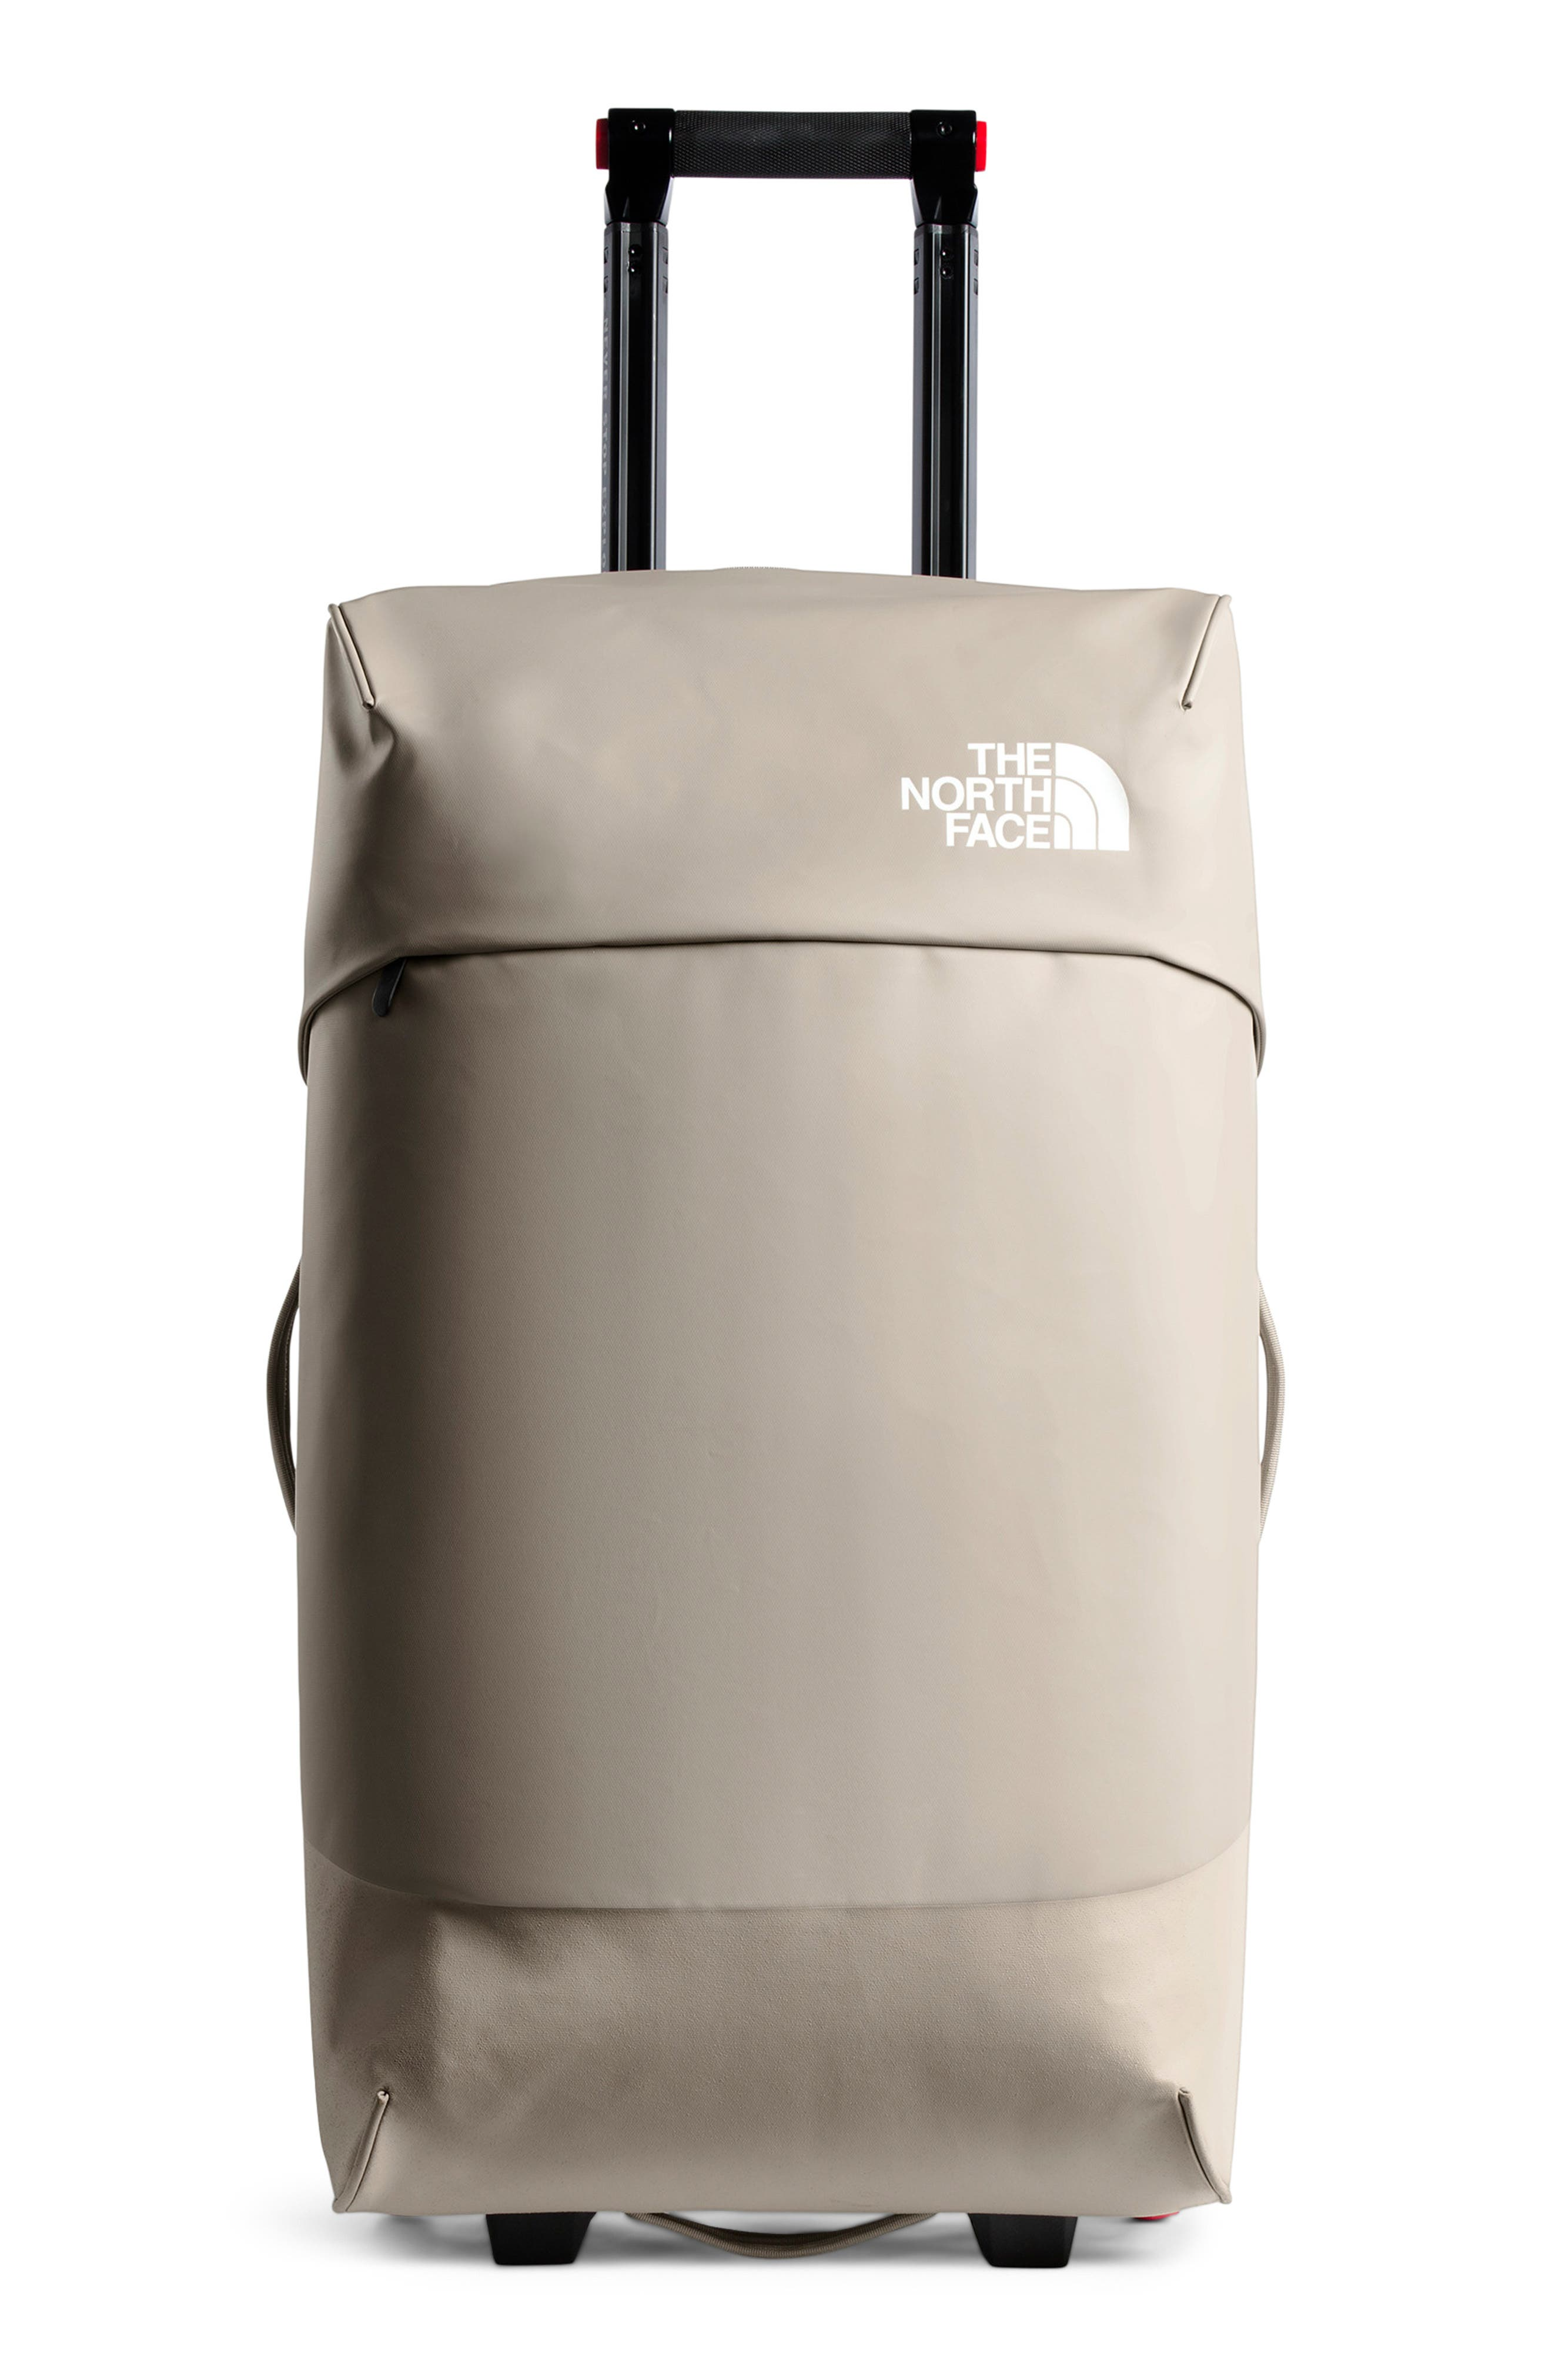 THE NORTH FACE, Stratoliner Large Rolling Suitcase, Main thumbnail 1, color, SILT GREY/MOONSTRUCK GREY